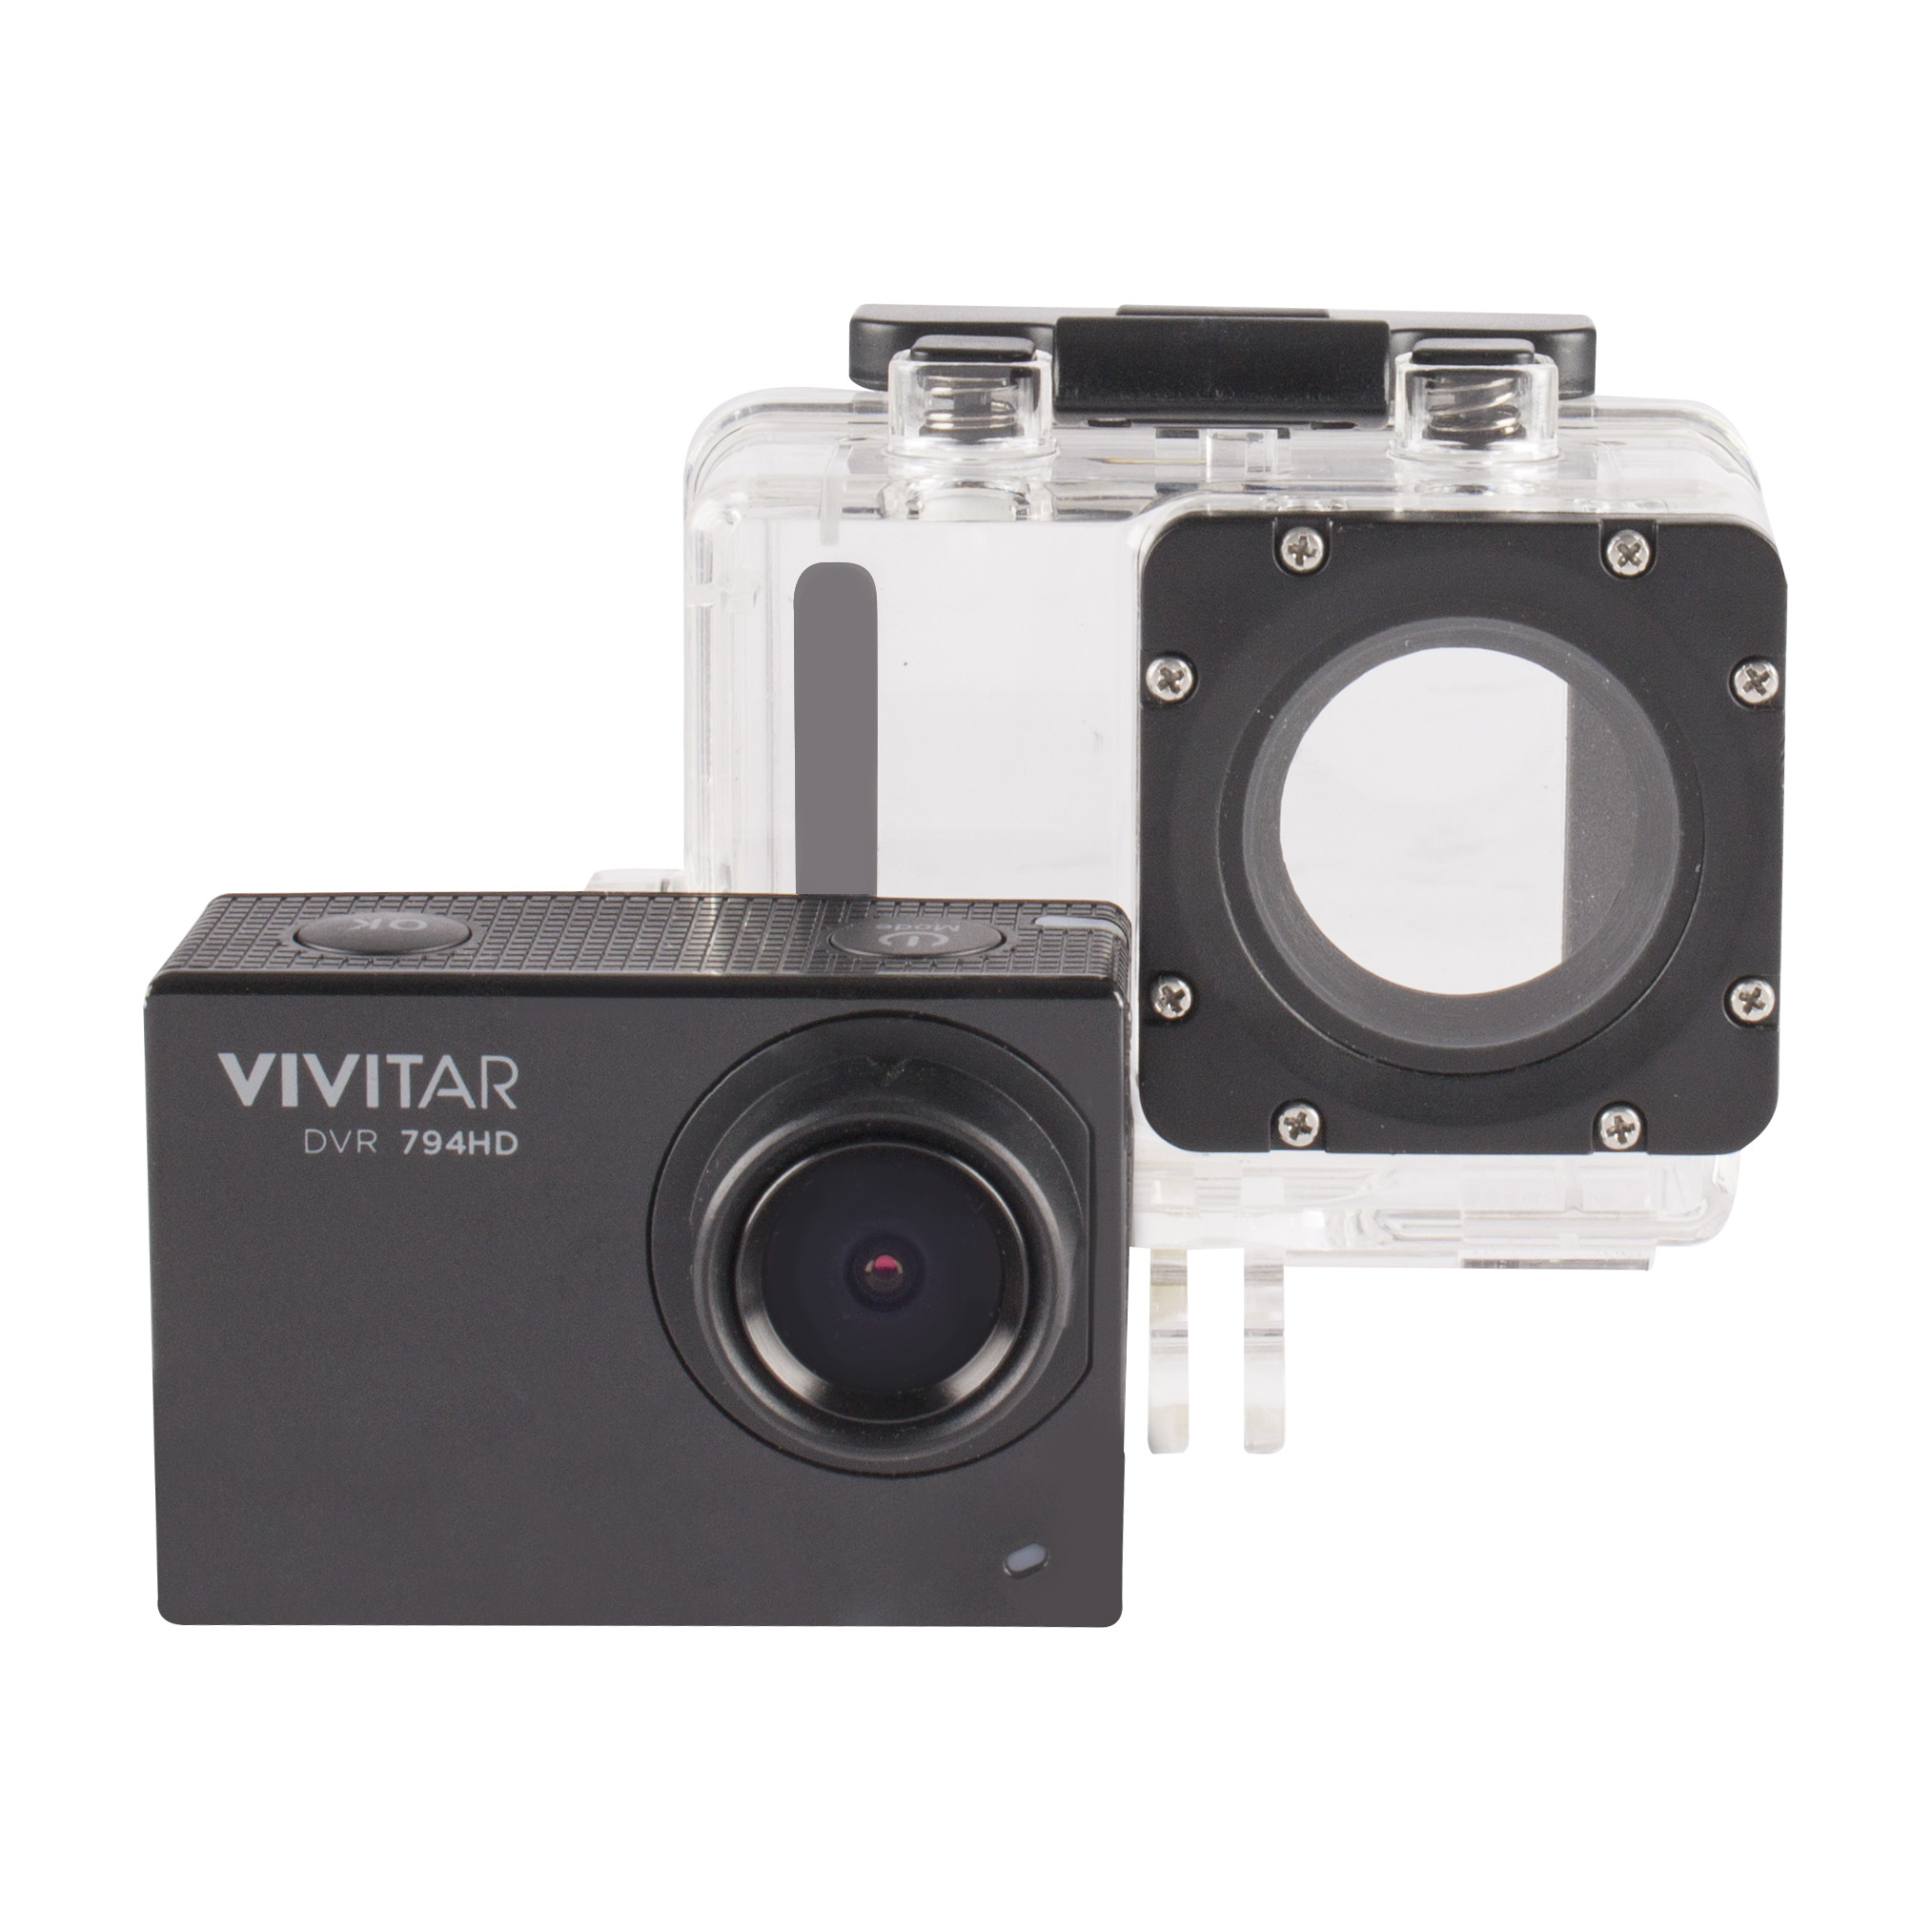 Camera Vivitar Action Cam vivitar full hd wifi actioncam 12 1 mp walmart com